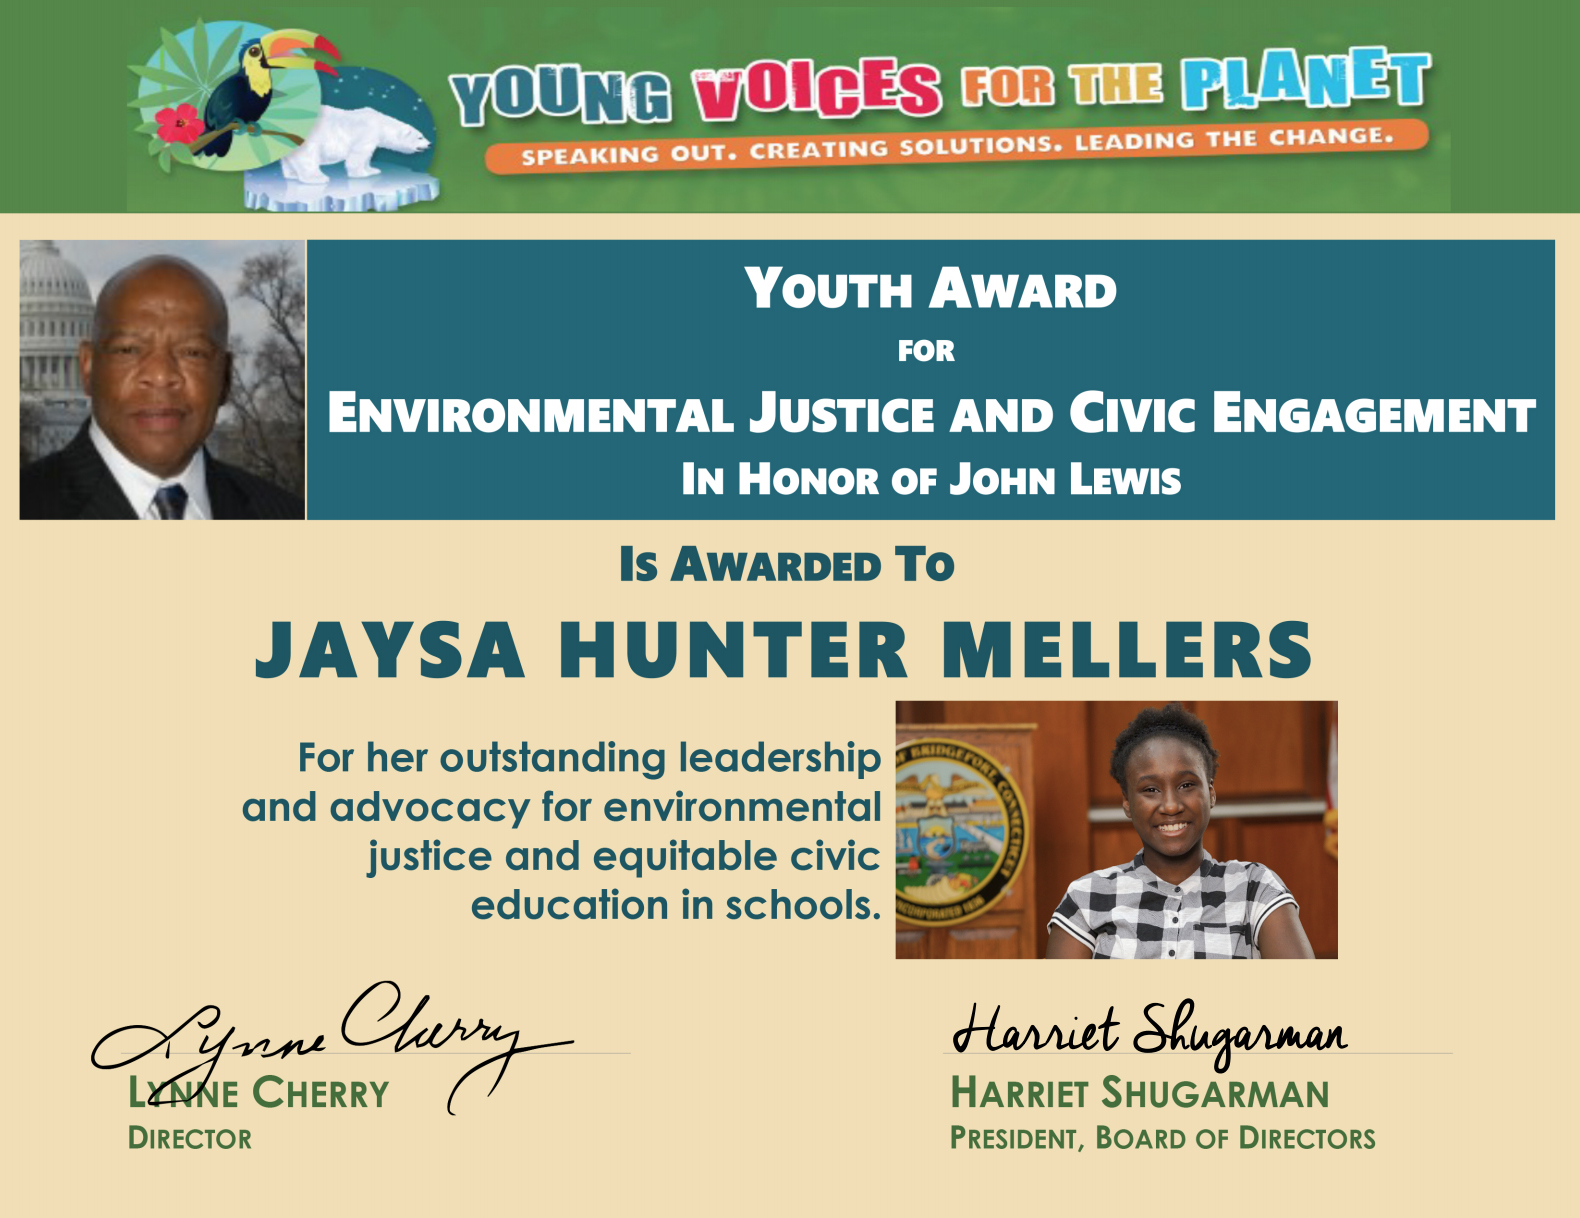 15 year old YVFP Youth Ambassador Jaysa Hunter-Mellers receives award for Environmental Justice and Civic Engagement in Honor of Rep. John Lewis